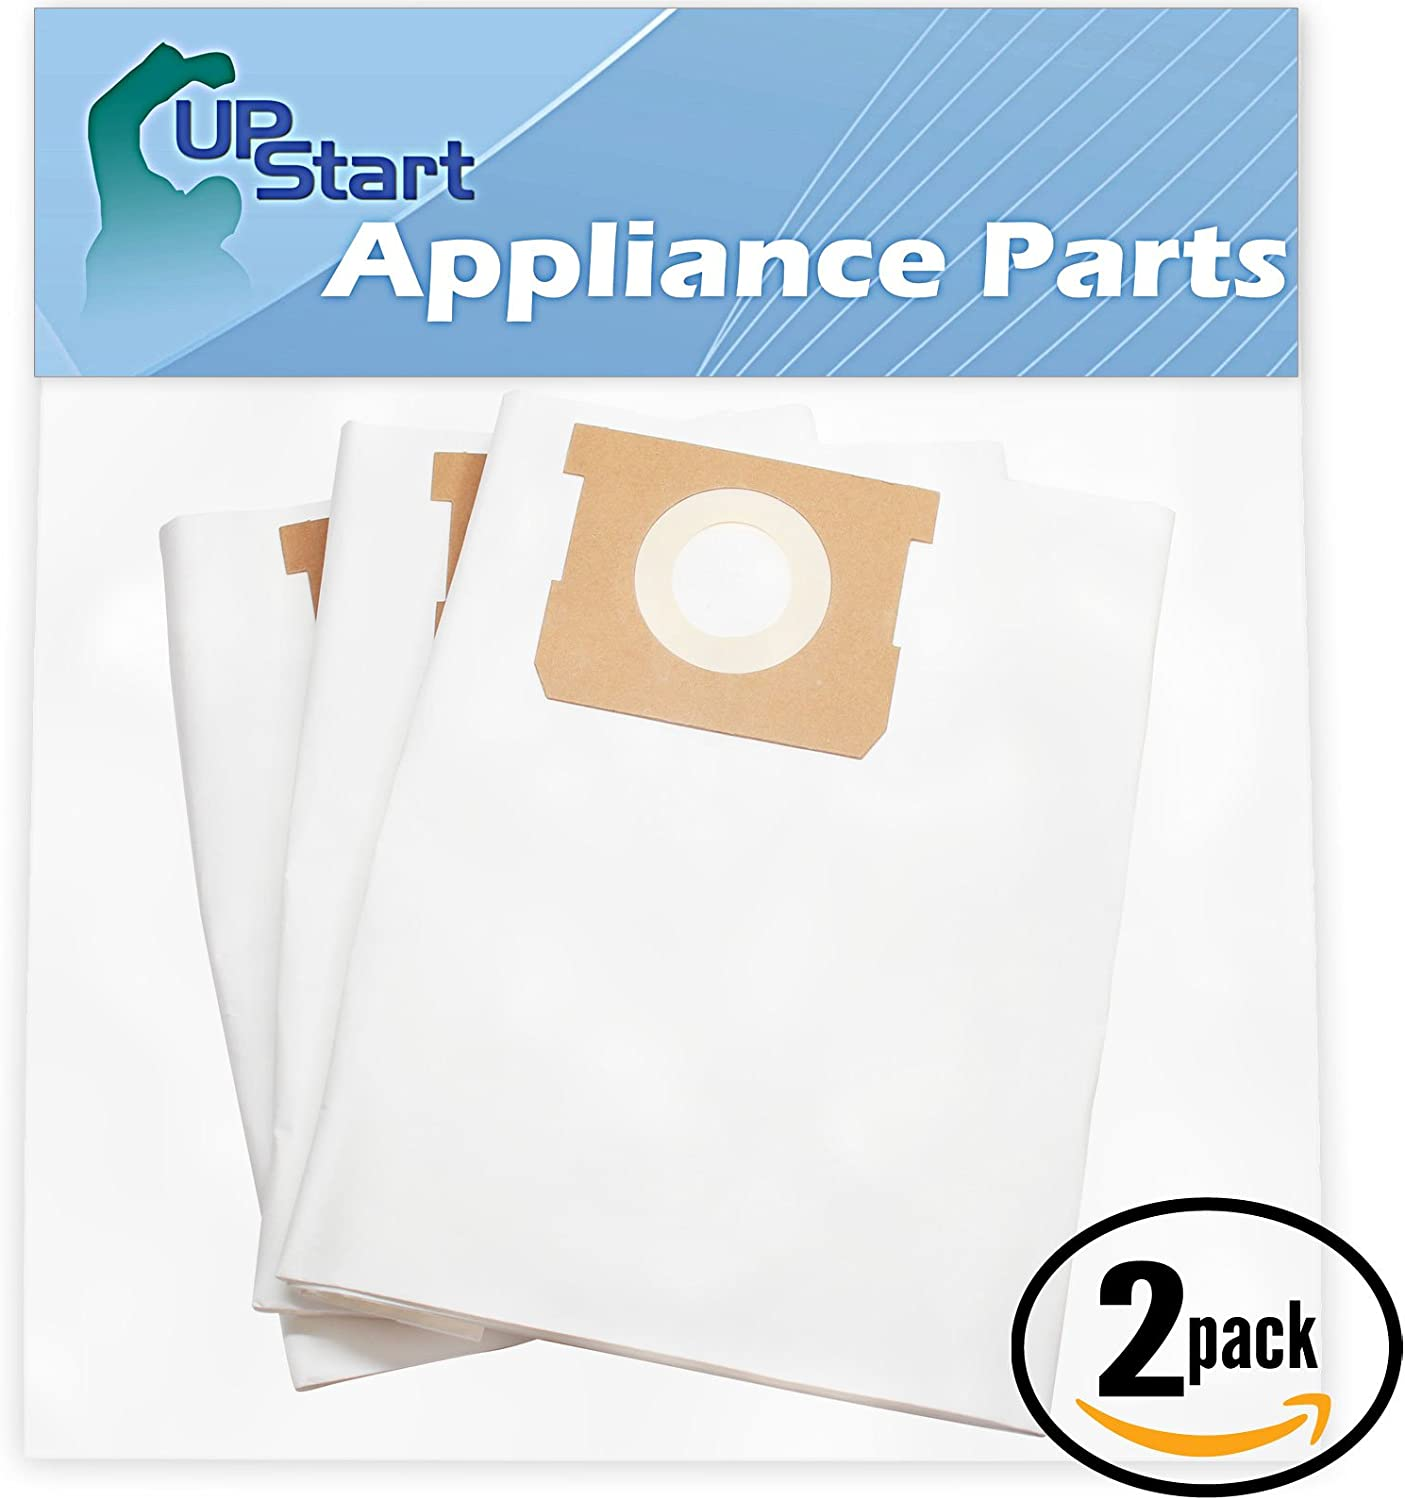 Upstart Battery 6 Replacement for Shop-VAC 90661 Vacuum Bags - Compatible with Shop-VAC 90661 Vacuum Bags (2-Pack, 3 Bags per Pack)